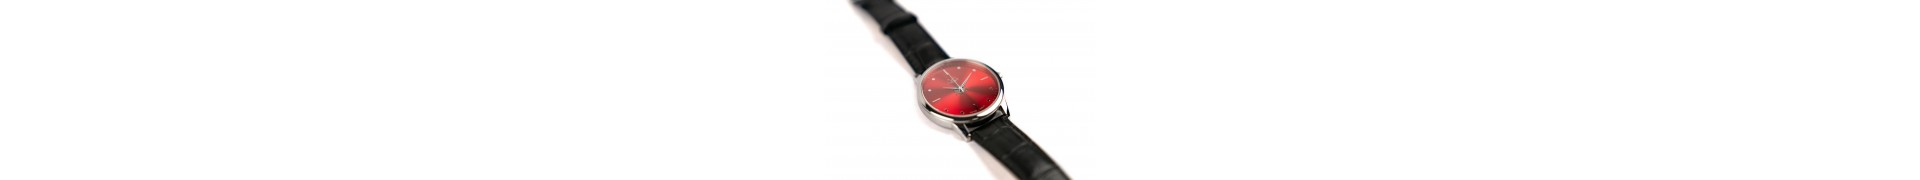 Watch virus who made worlds news things on watch brands and quality